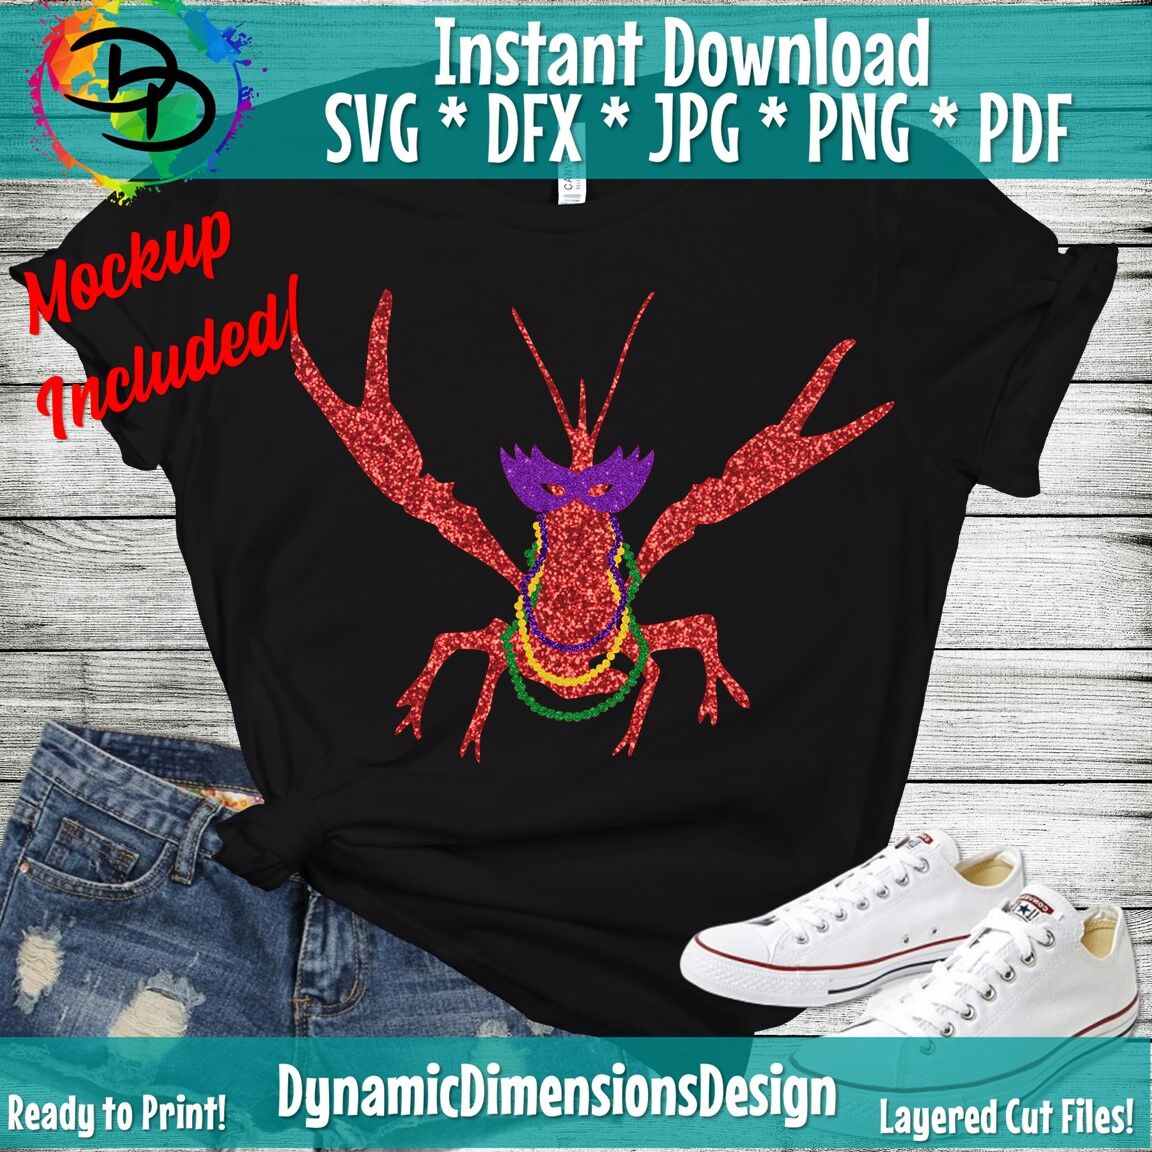 Crawfish Svg Mardi Gras Svg Craw Fish Svg Crawfish Shirt Mardi